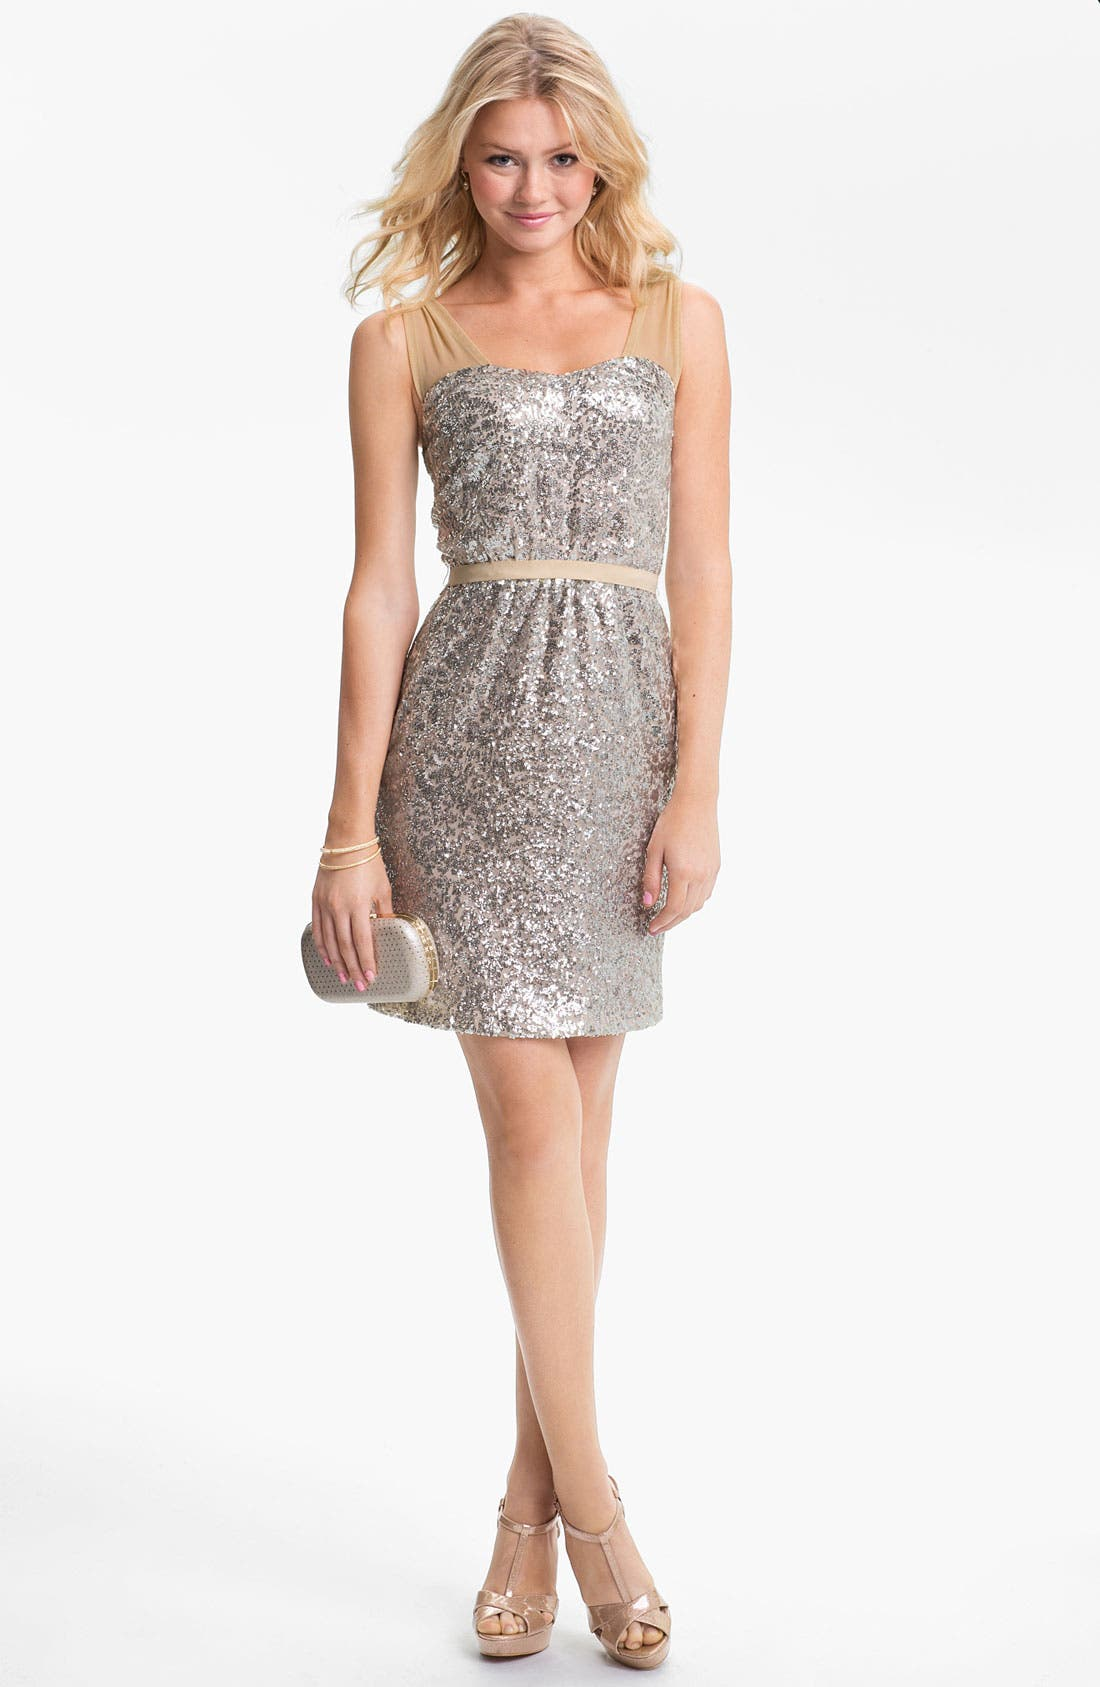 Main Image - ERIN erin fetherston Sequin Mesh Dress